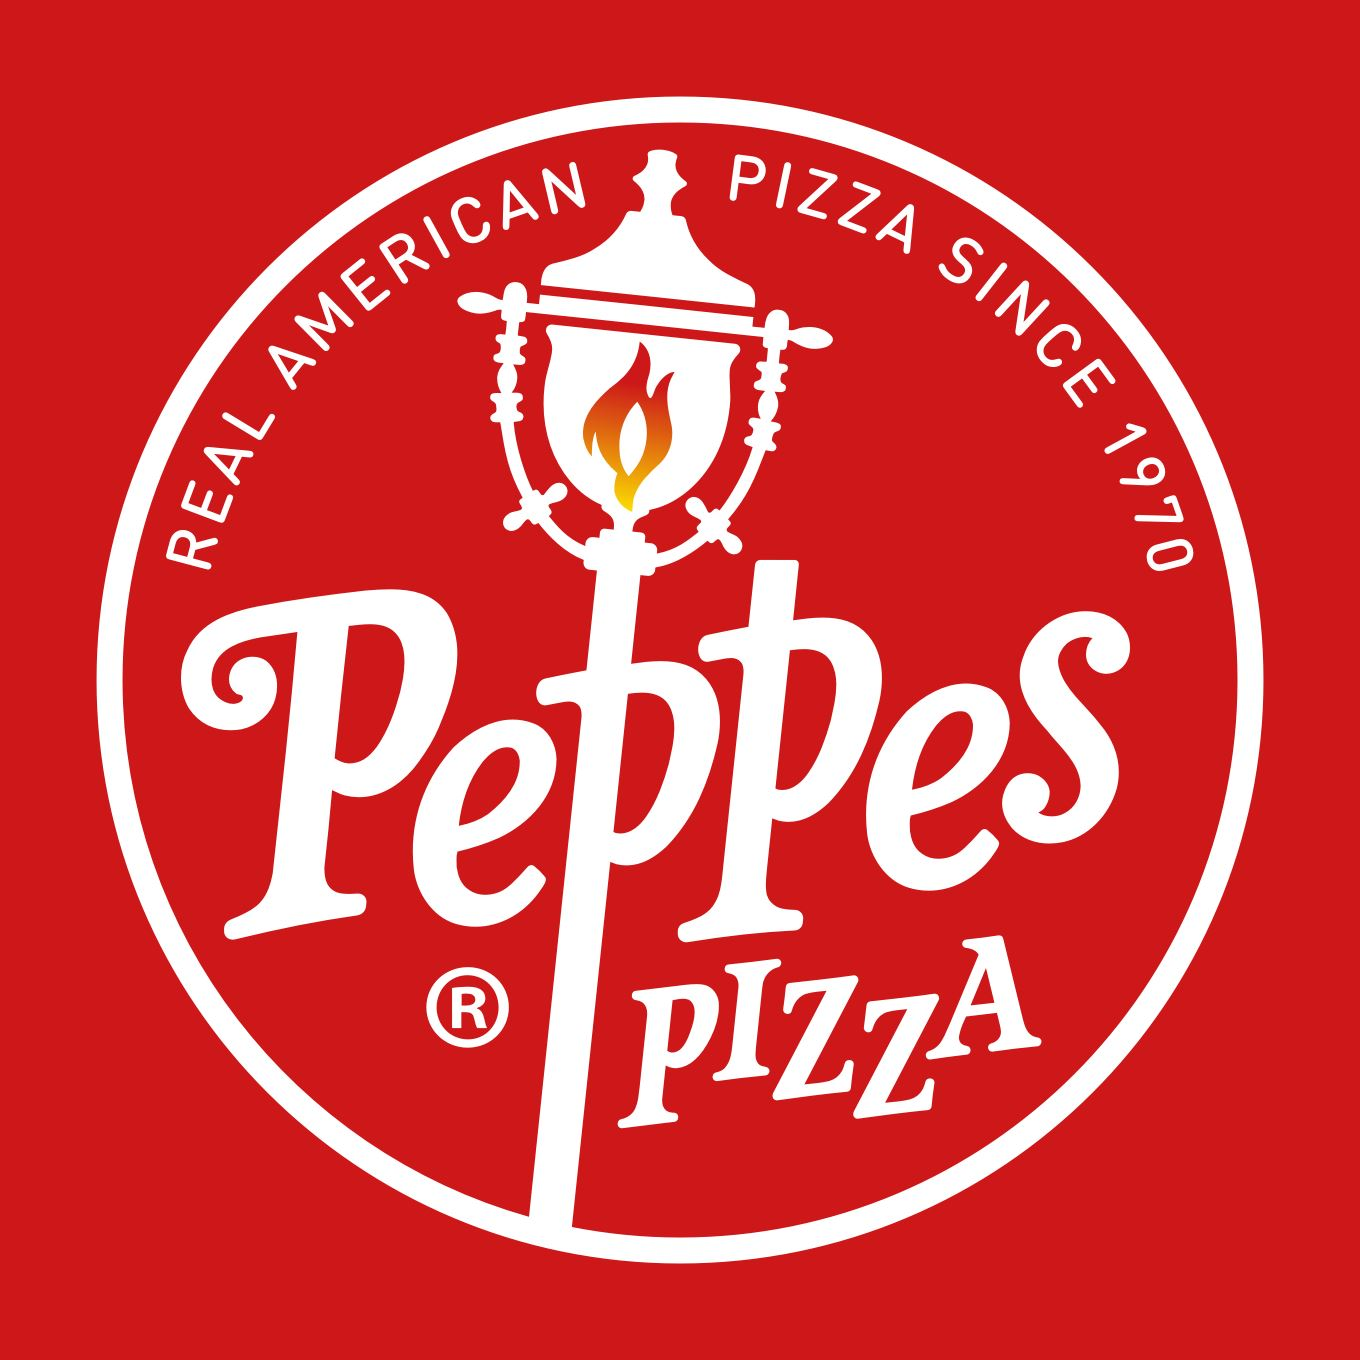 Peppes Pizza - Real American pizza since 1970!